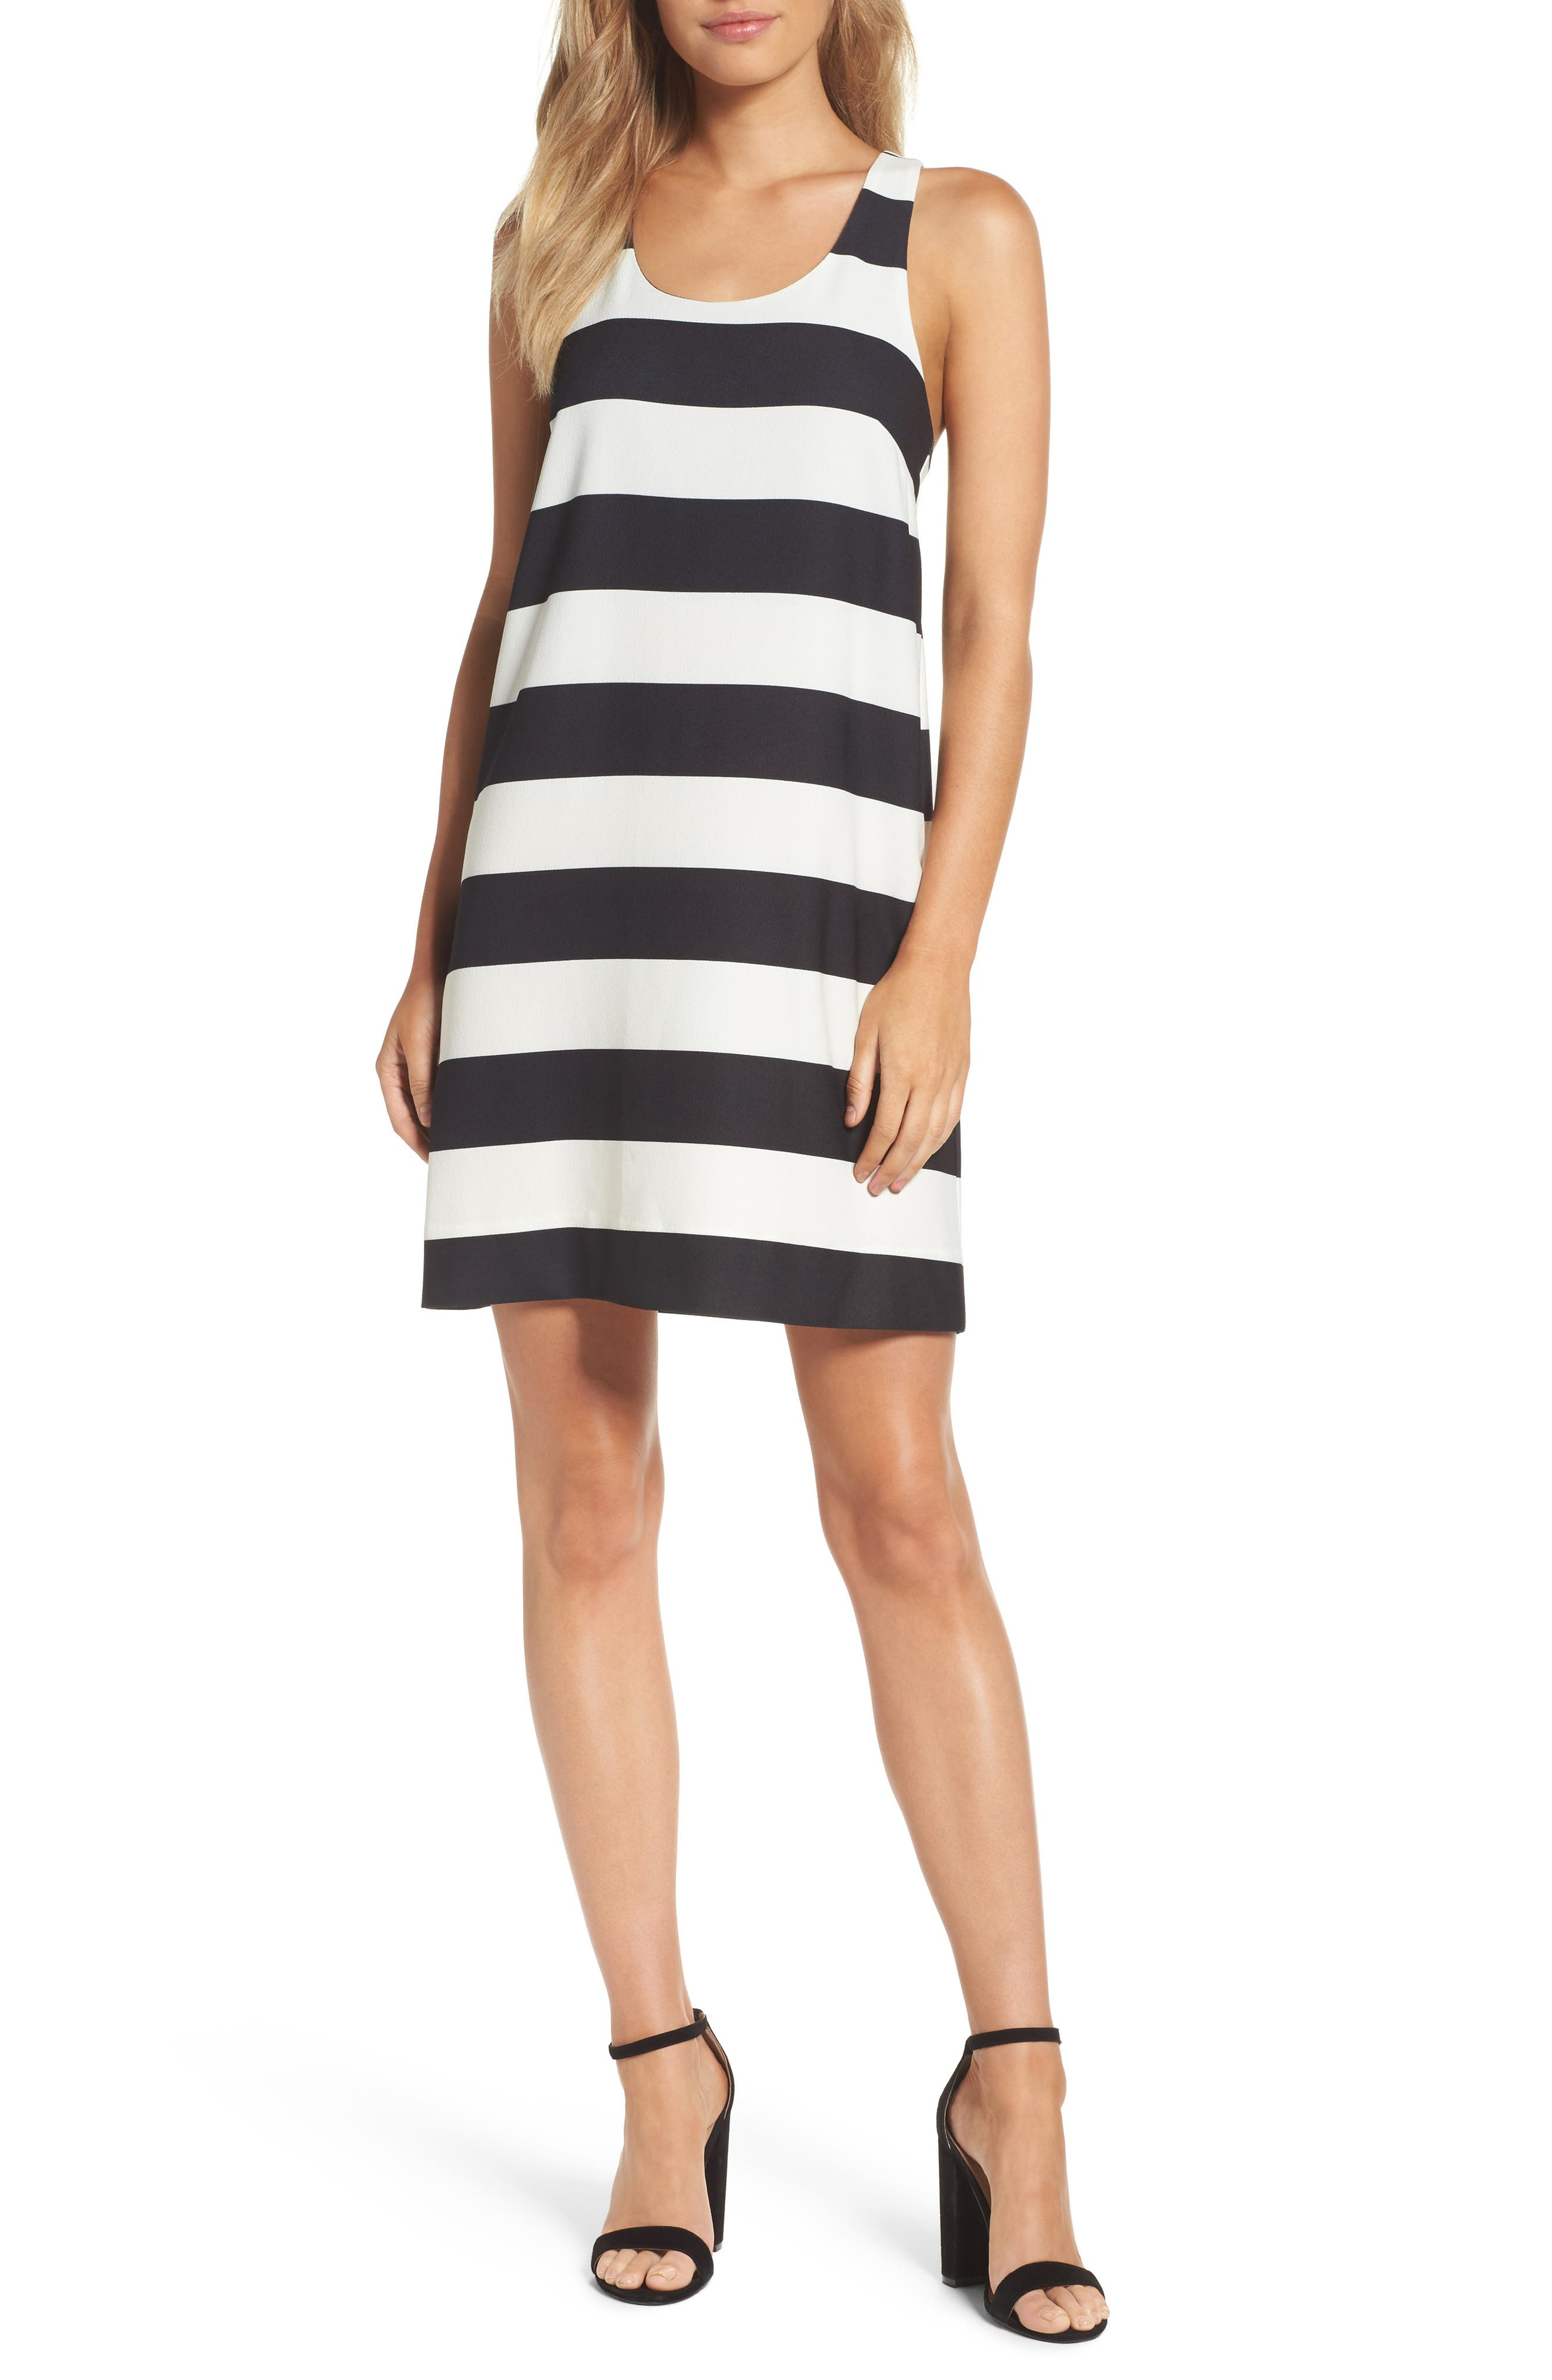 Alternate Image 1 Selected - Felicity & Coco Sandy A-Line Dress (Nordstrom Exclusive)